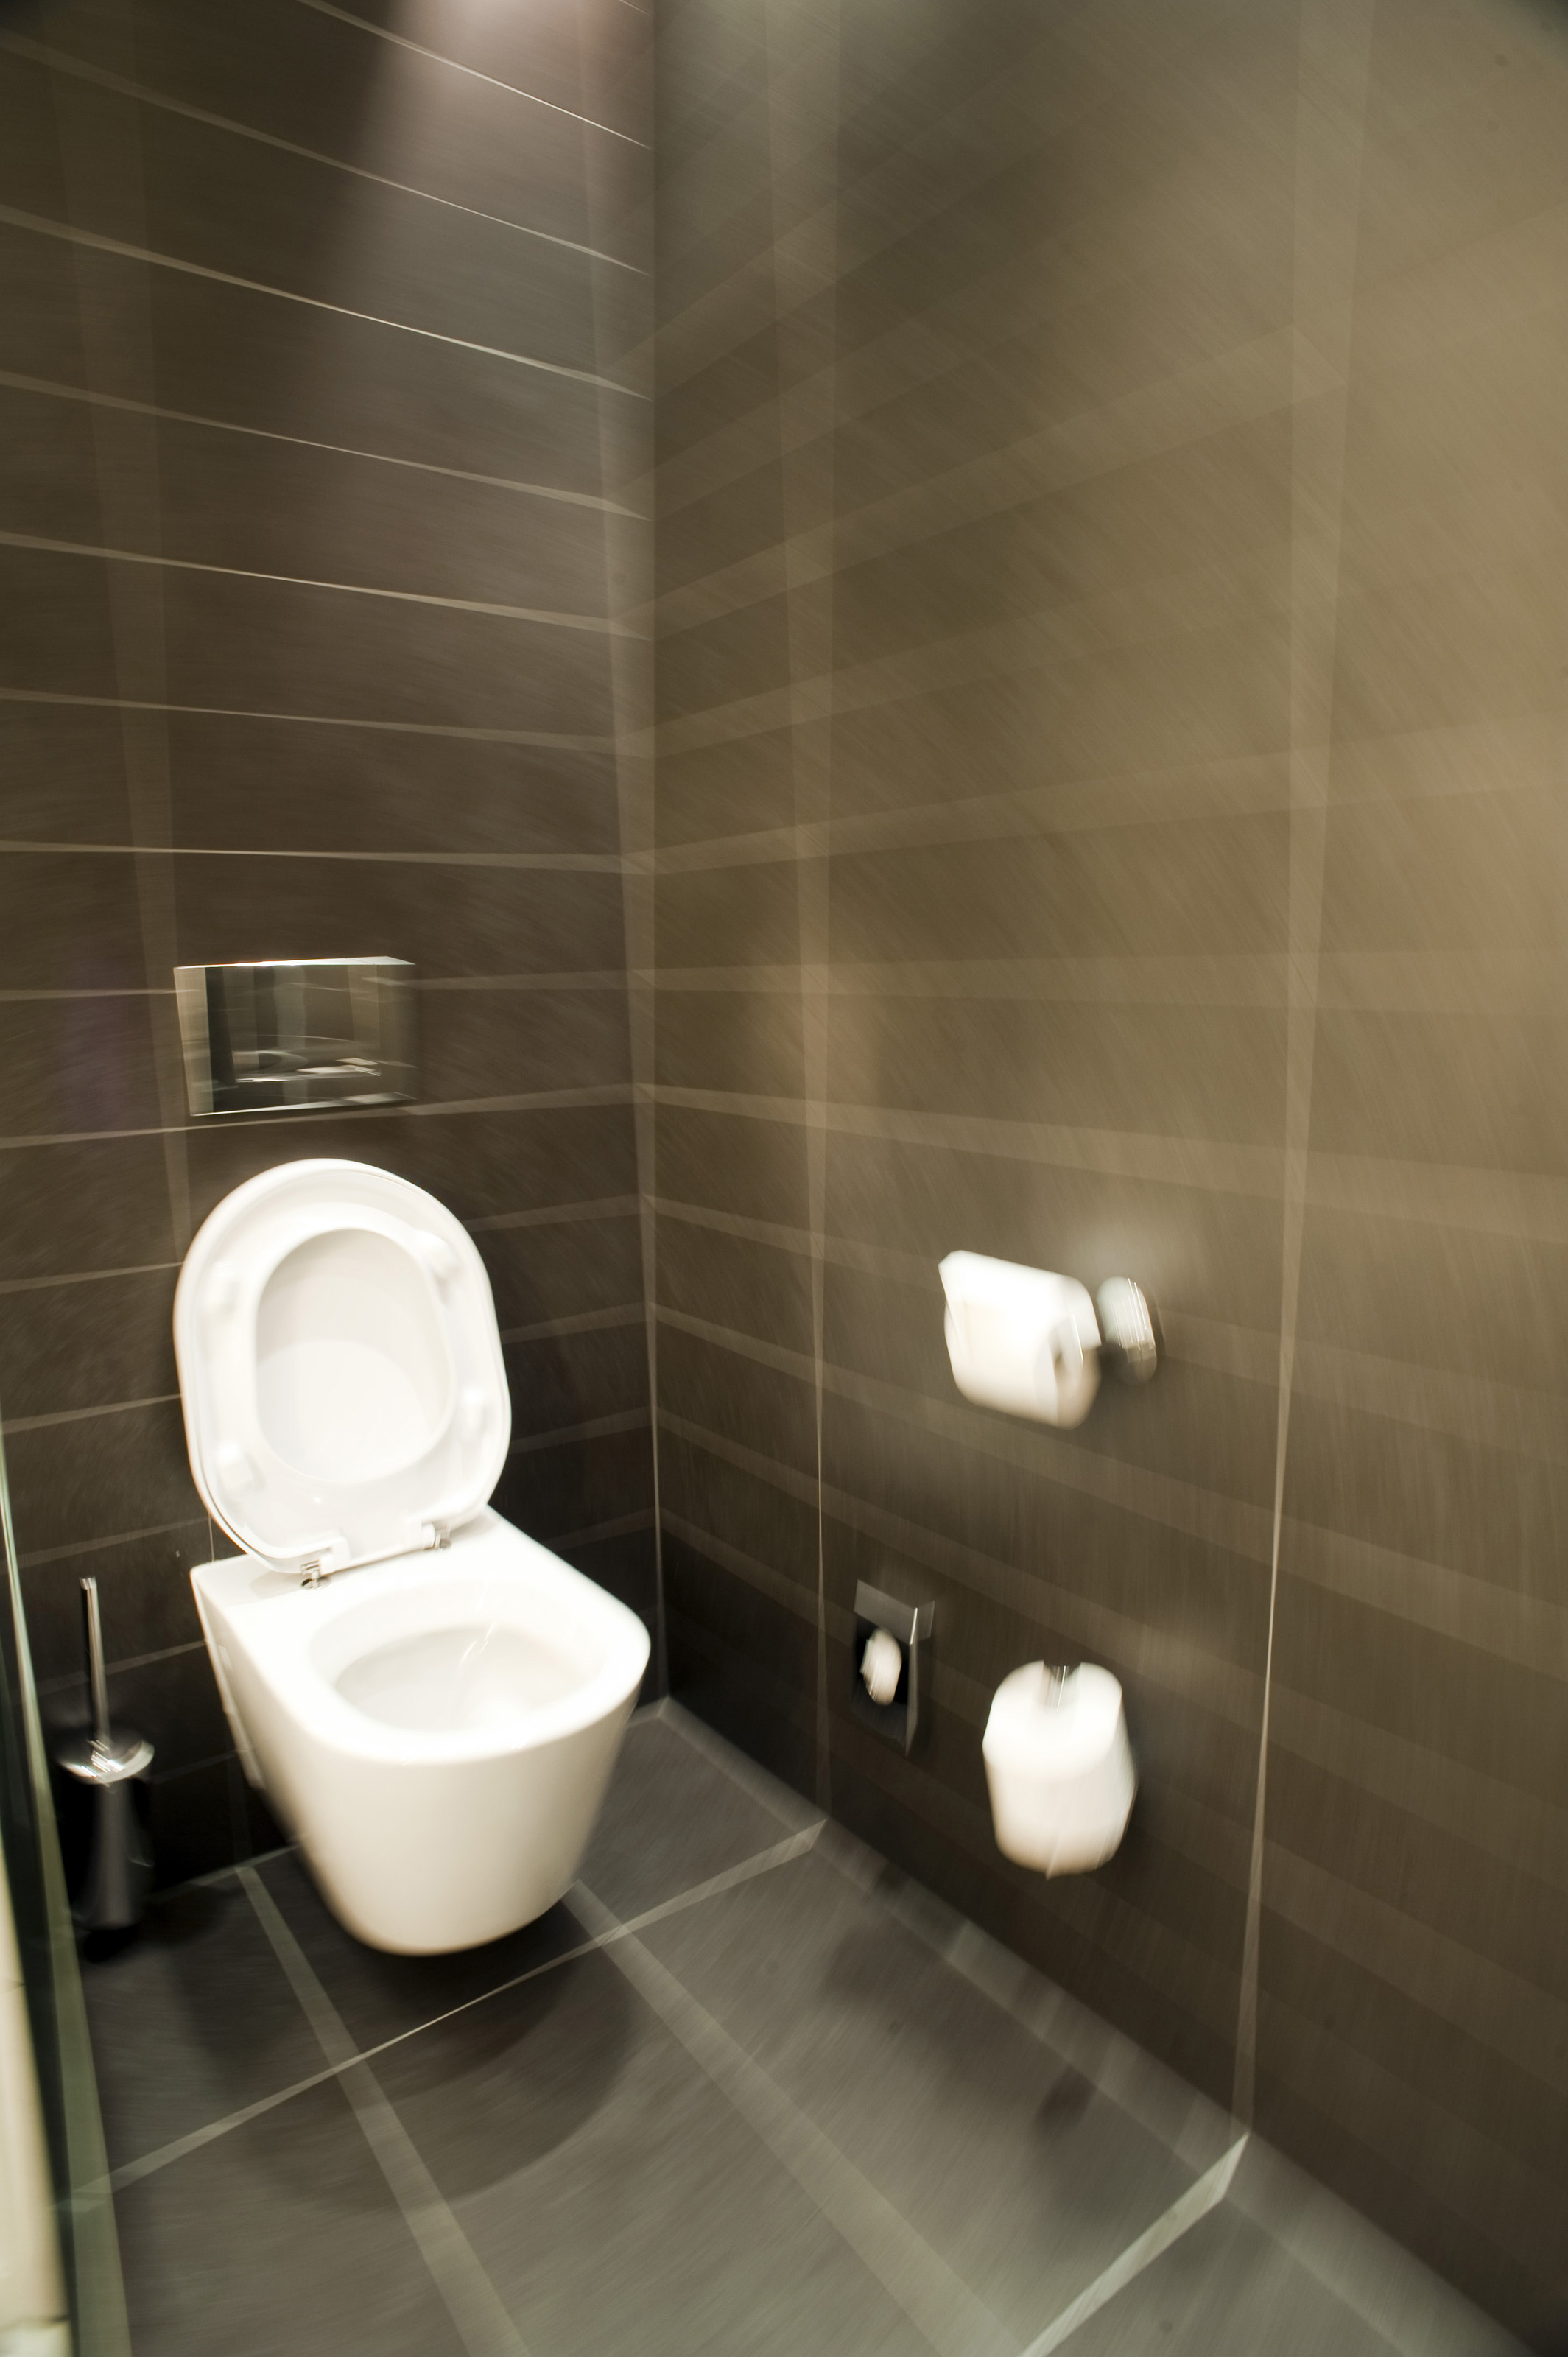 Free Stock Photo 6889 Interior Of A Modern Water Closet